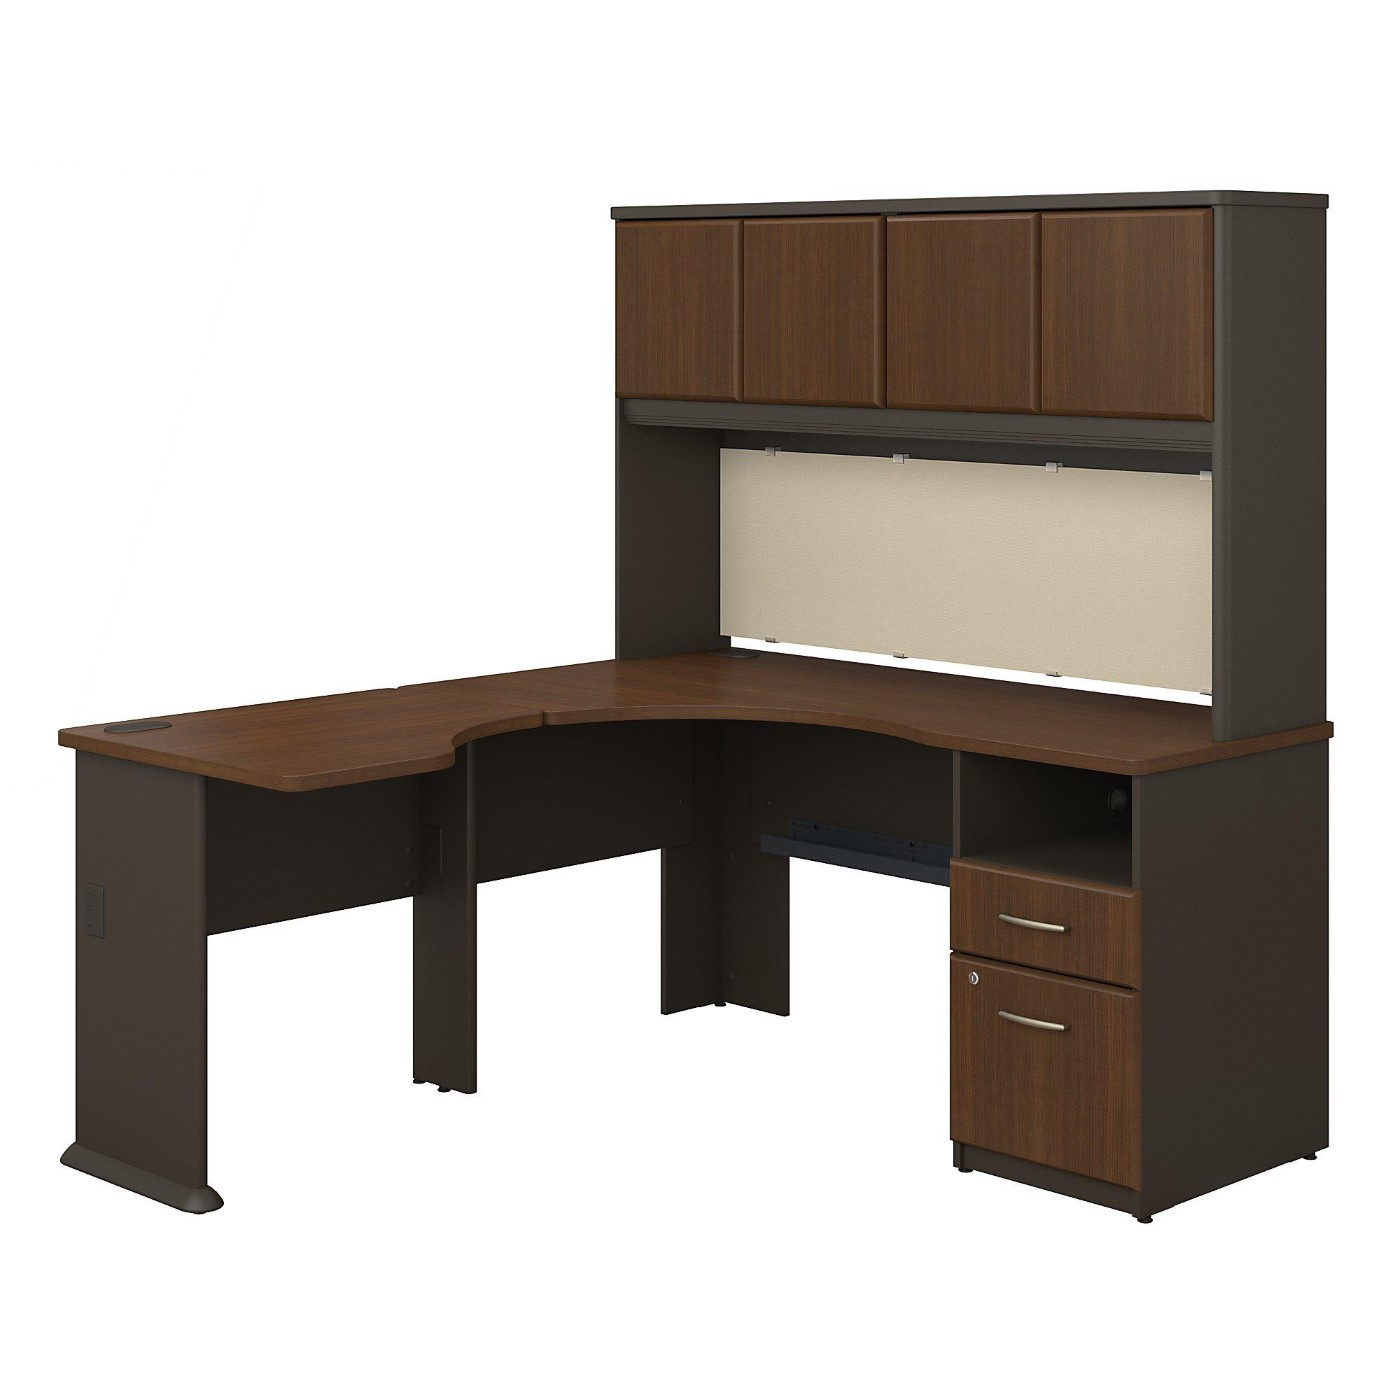 <font color=#c60><b>BUSH BUSINESS FURNITURE SERIES A 60W X 65D L SHAPED DESK WITH HUTCH AND 2 DRAWER PEDESTAL. FREE SHIPPING</font></b></font></b>